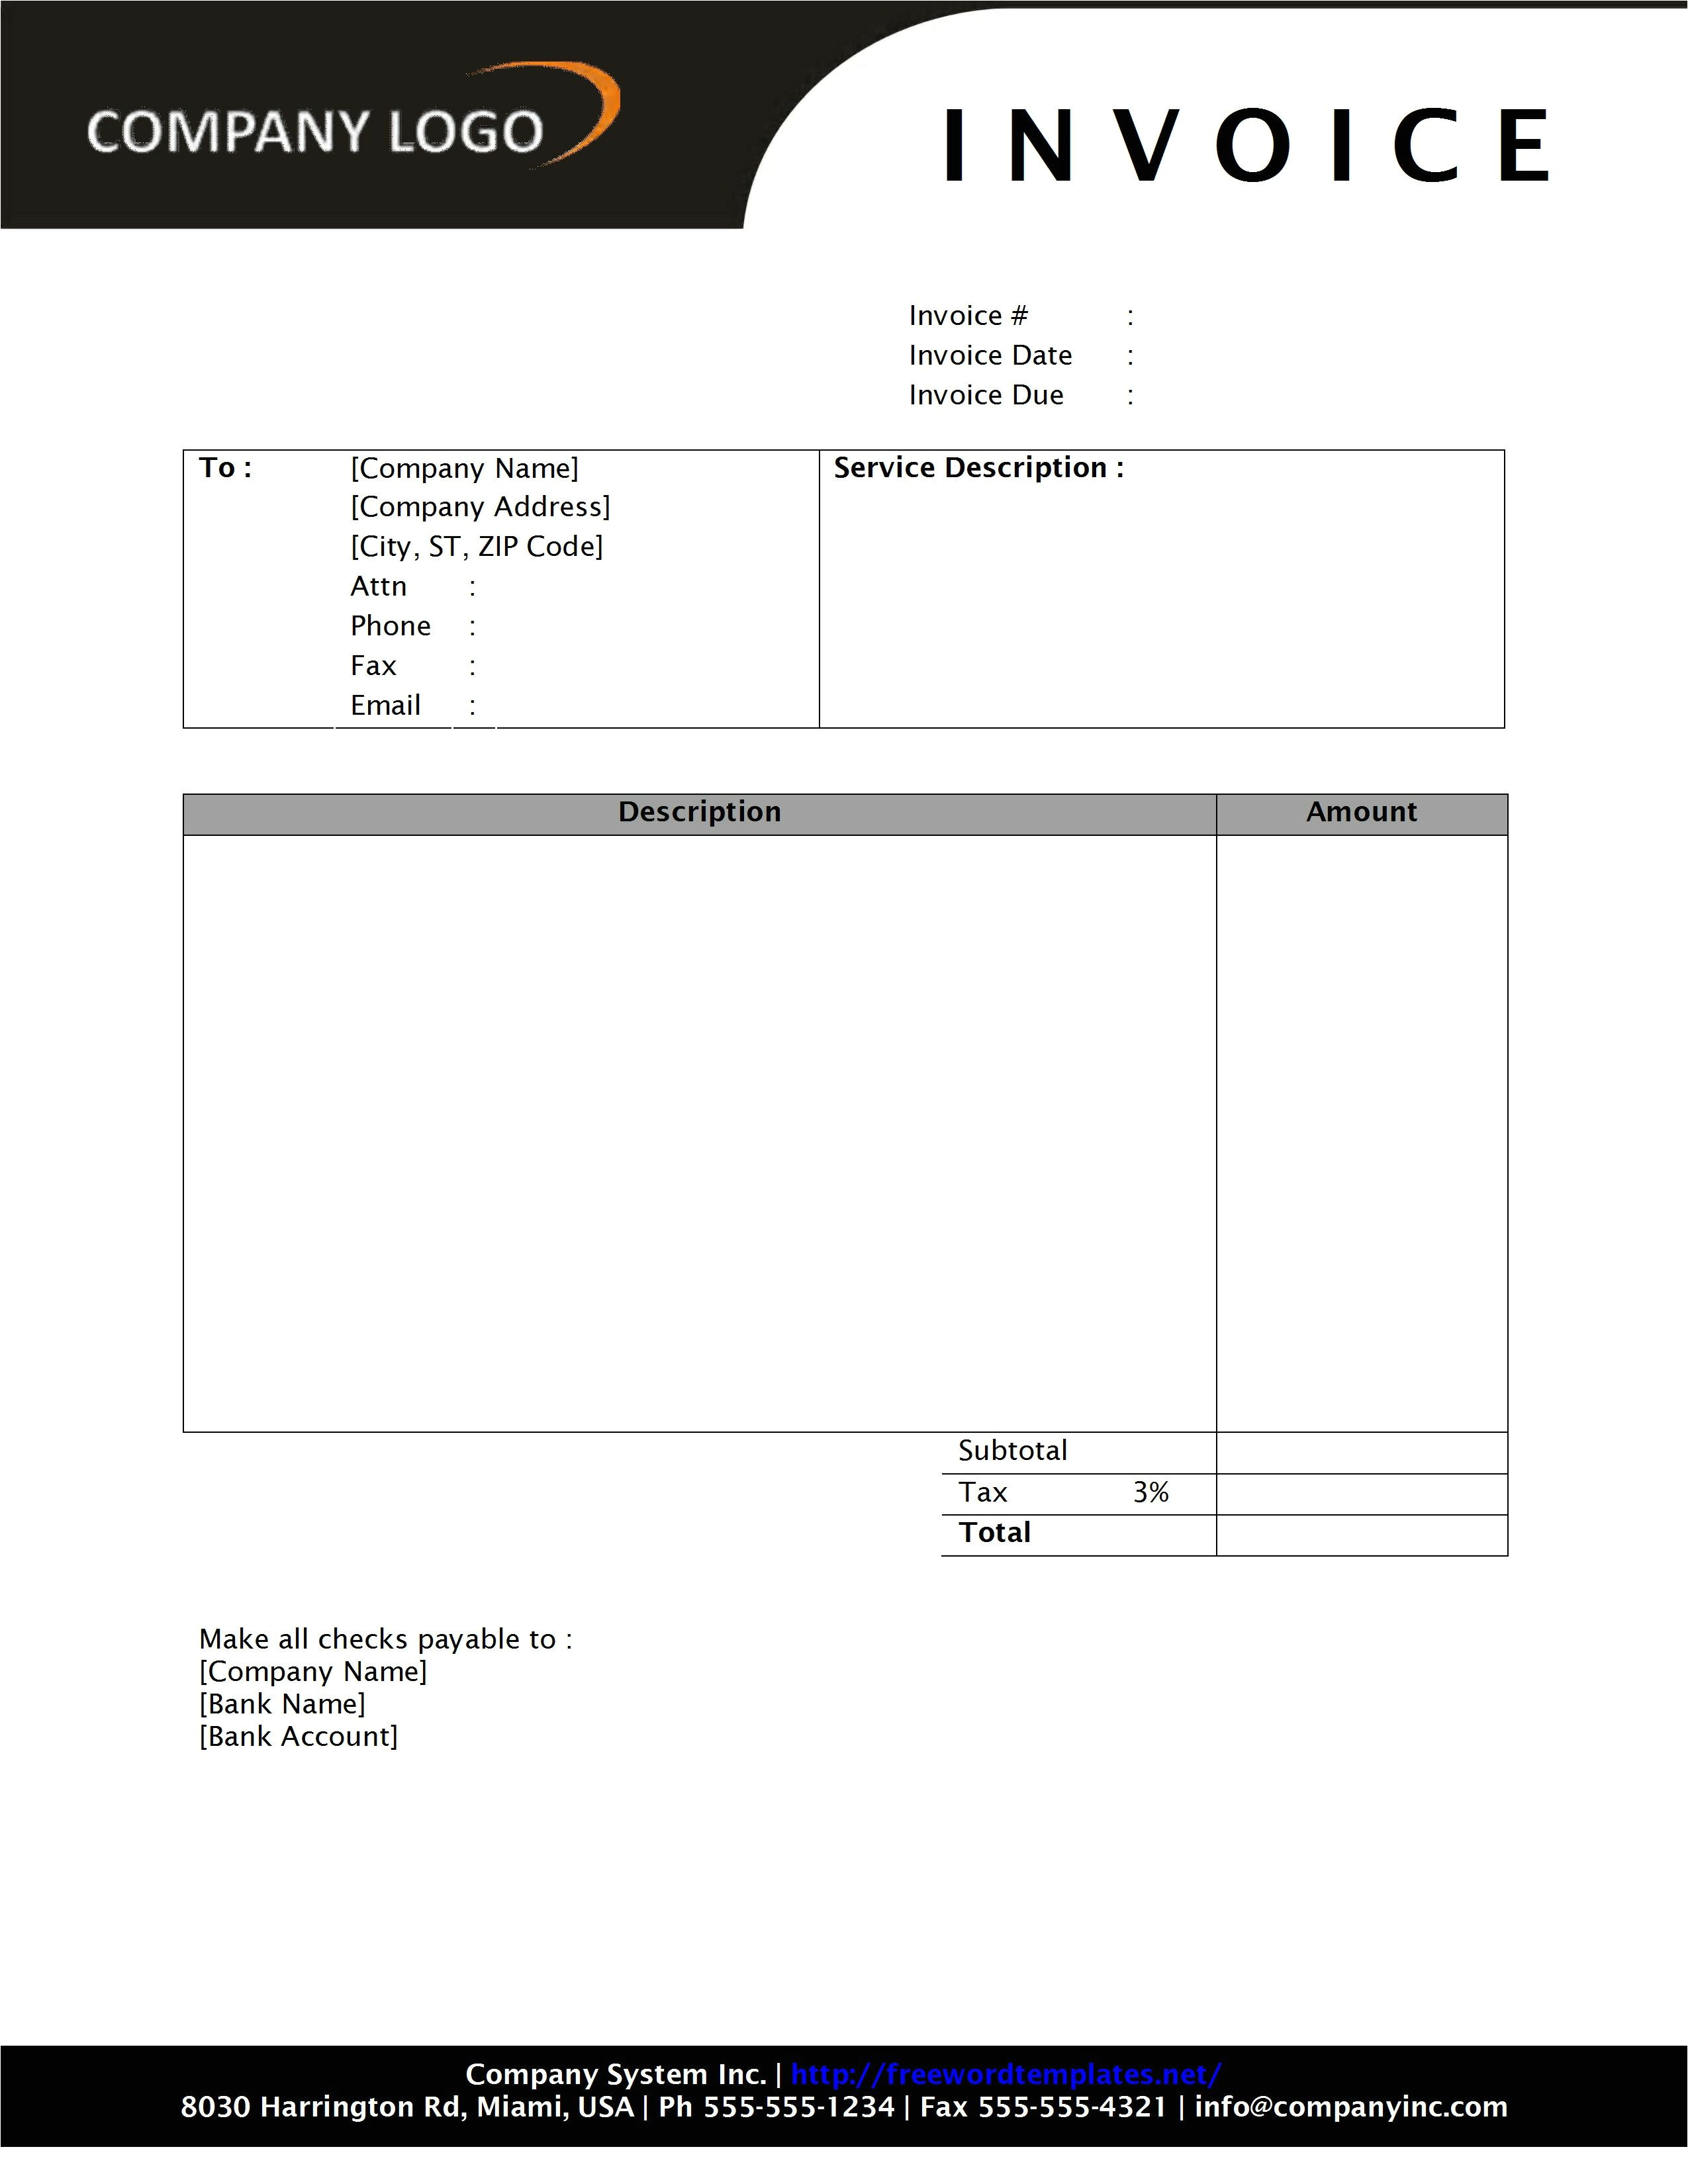 invoice template word 2010 853